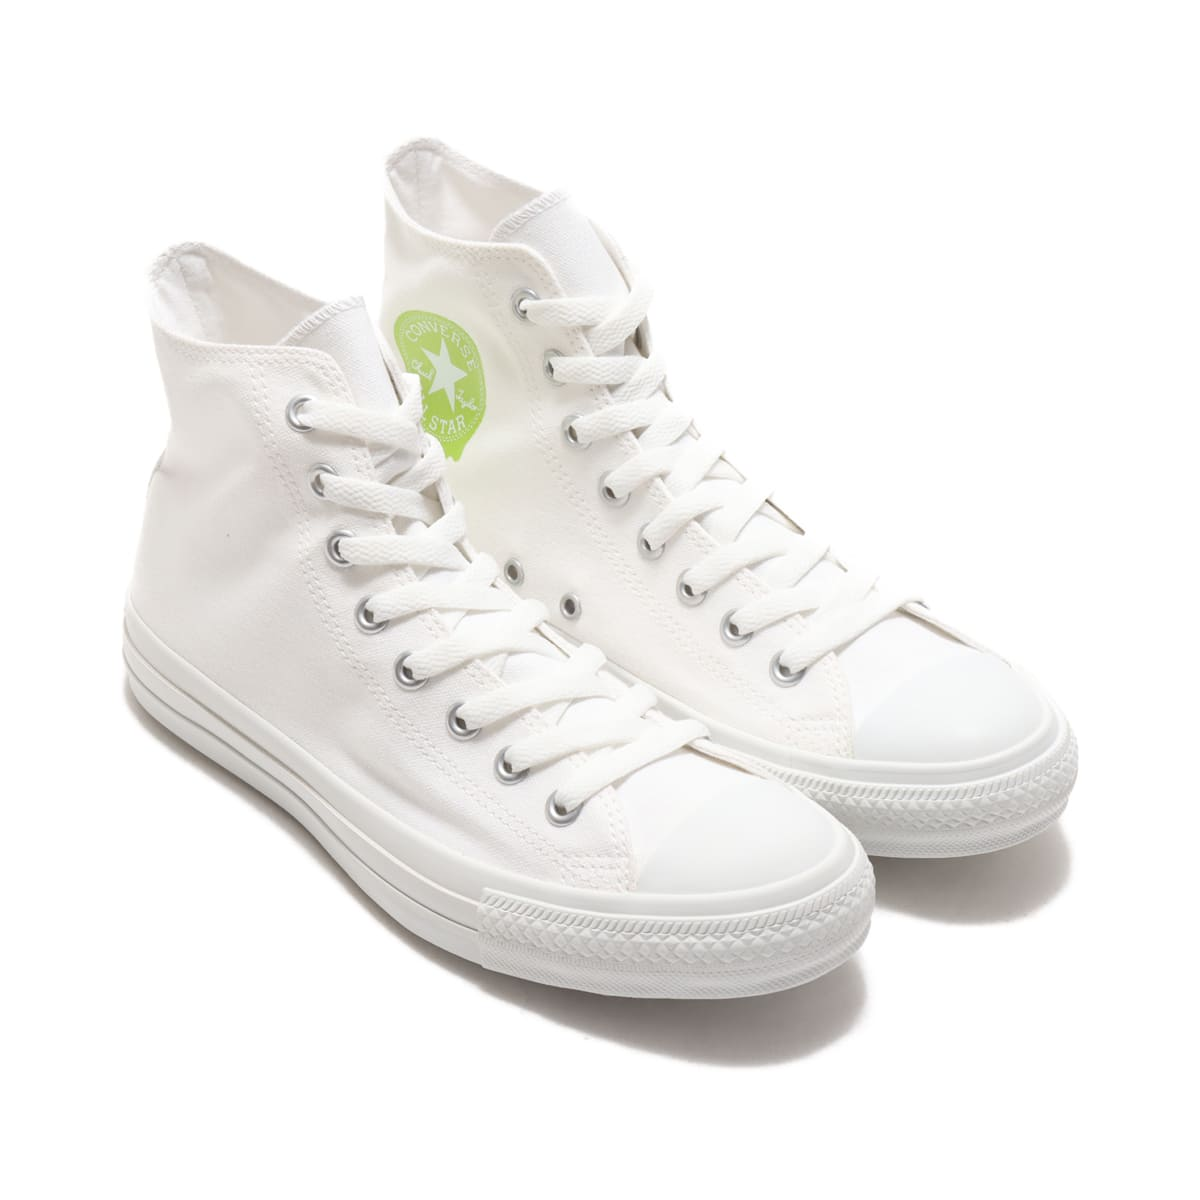 CONVERSE ALL STAR DRIPPATCH HI WHITE 20FW-I_photo_large